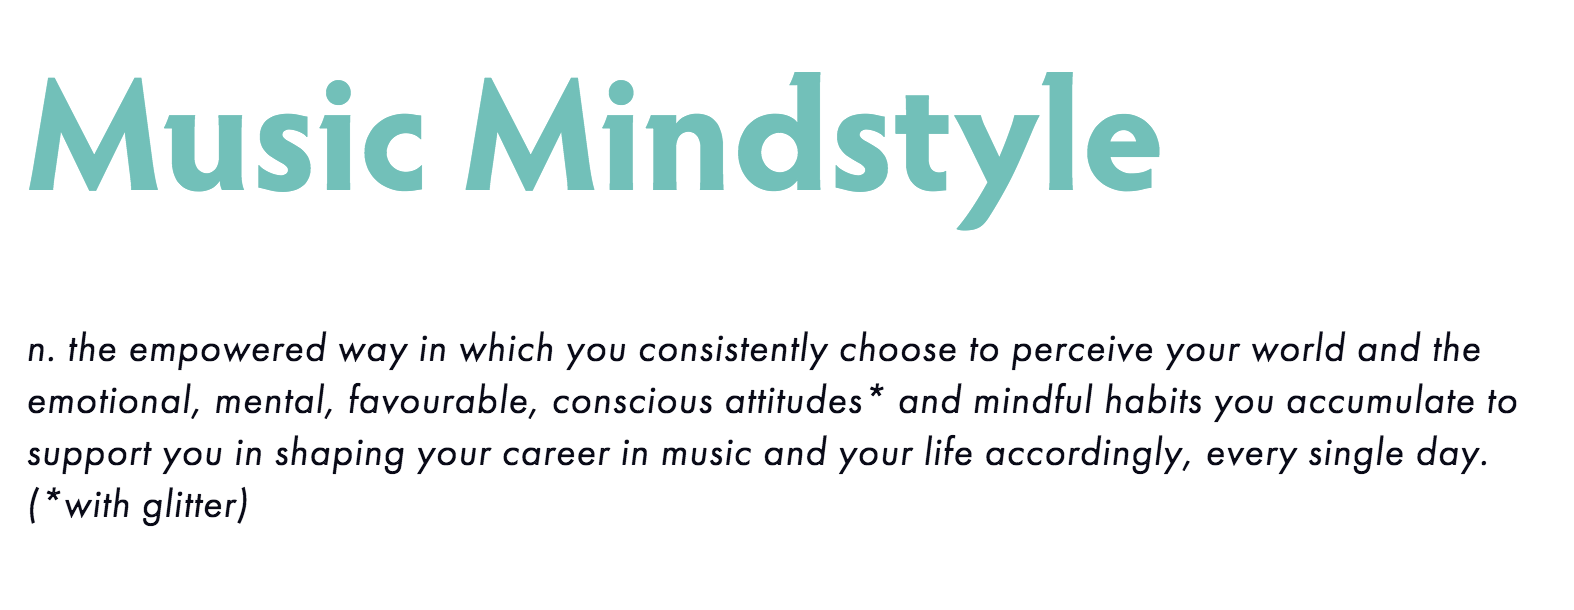 Music Mindstyle Definition.png